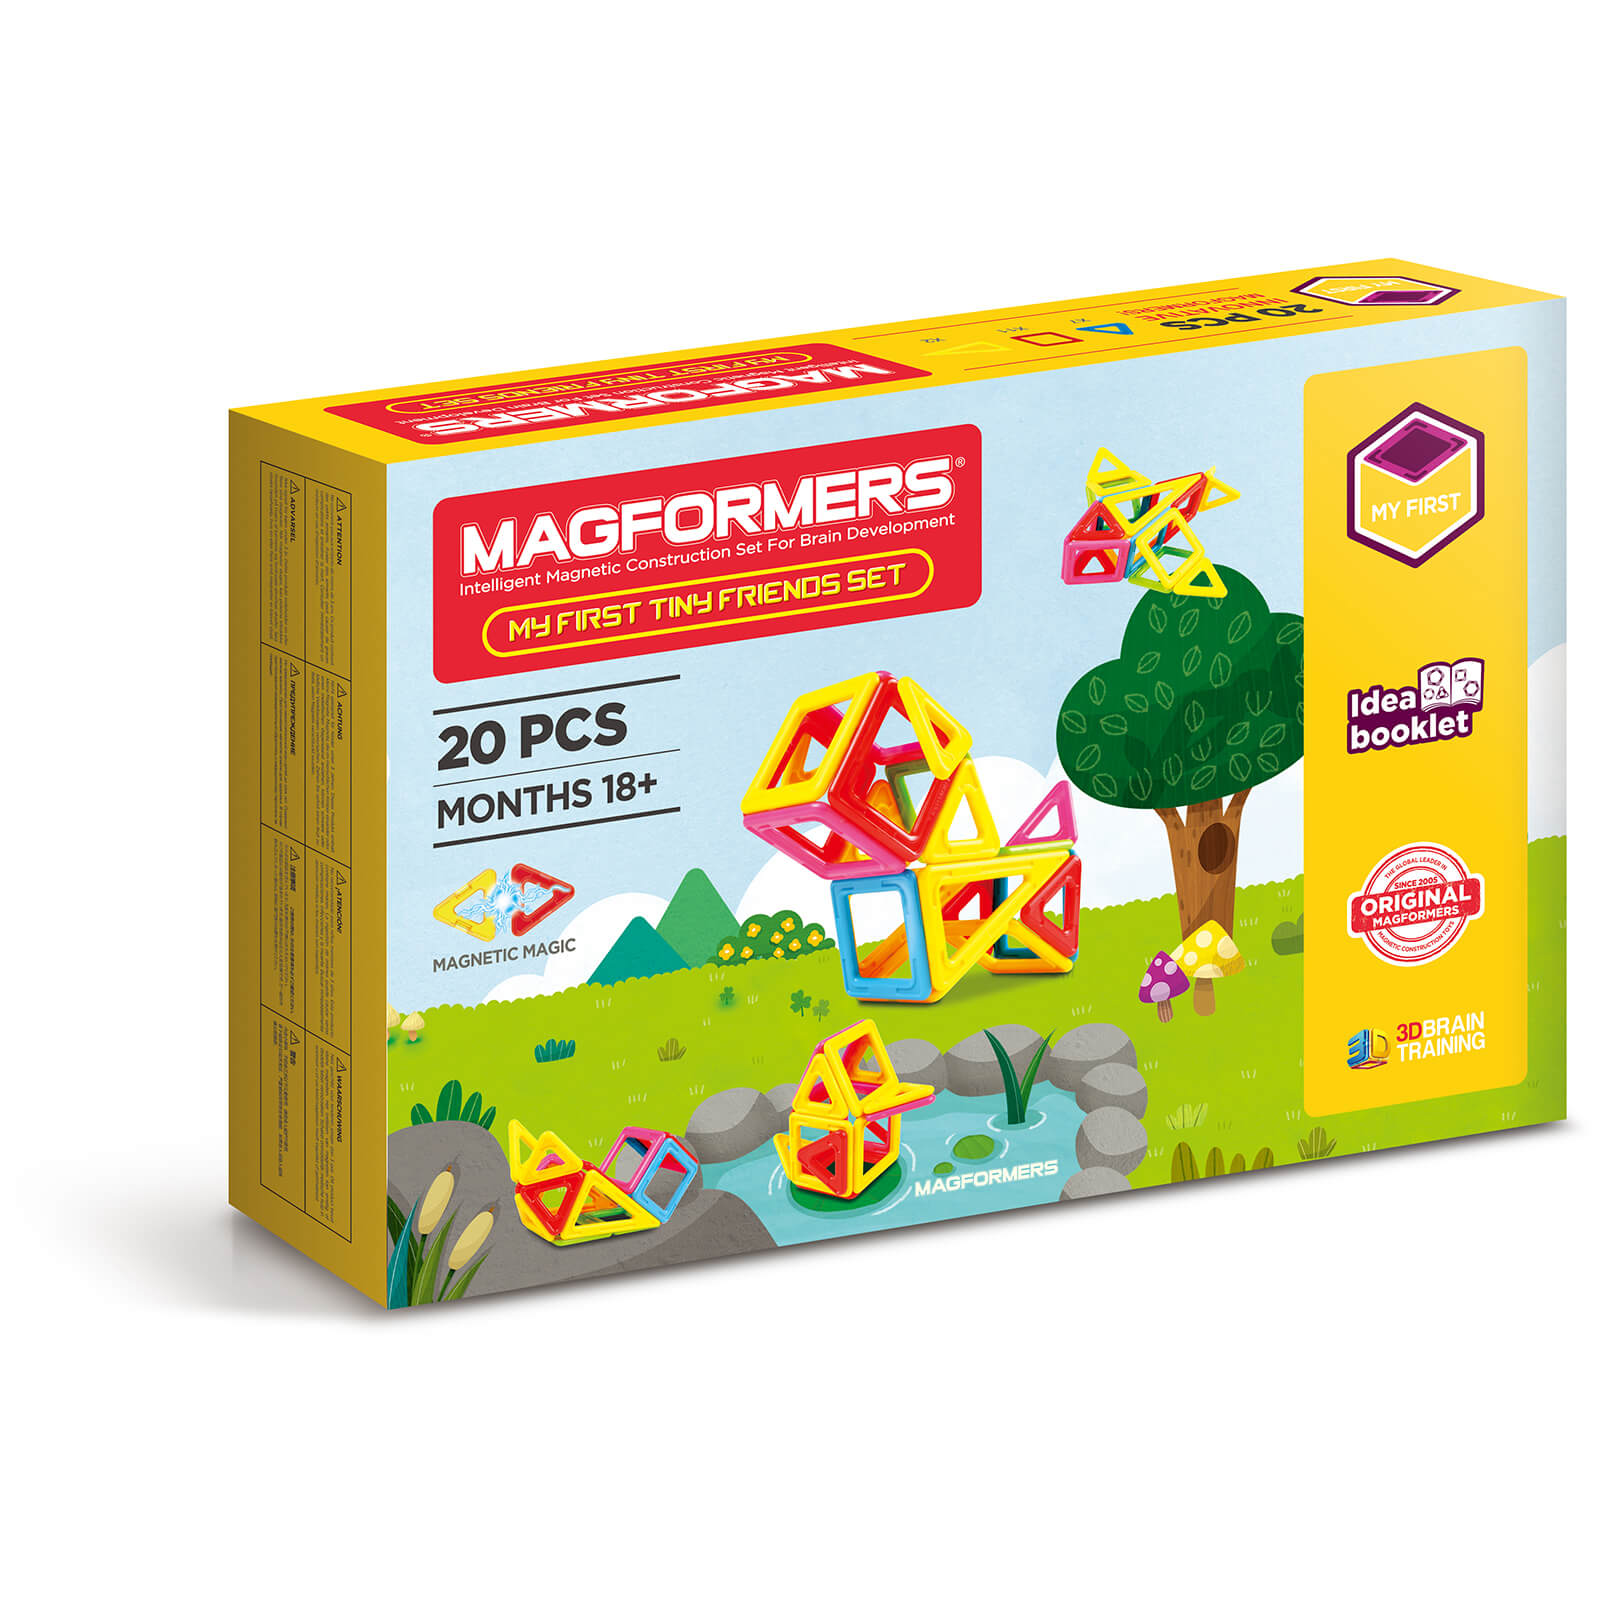 Magformers My first Tiny Friends